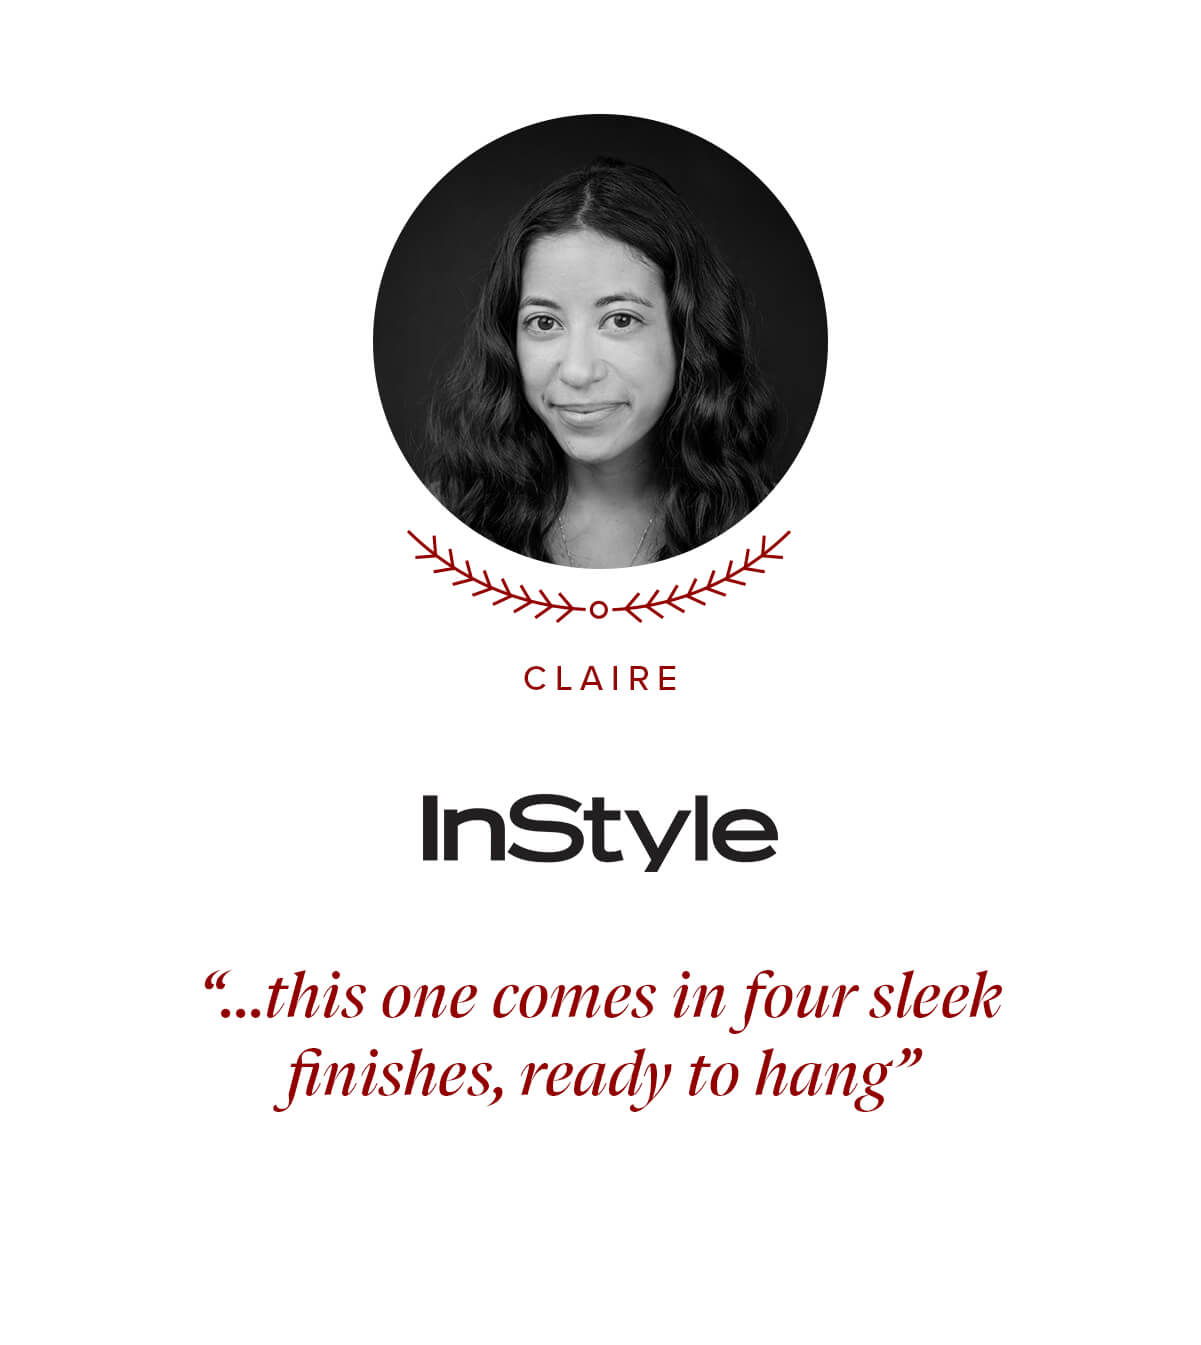 Instyle press quote by Claire Stern